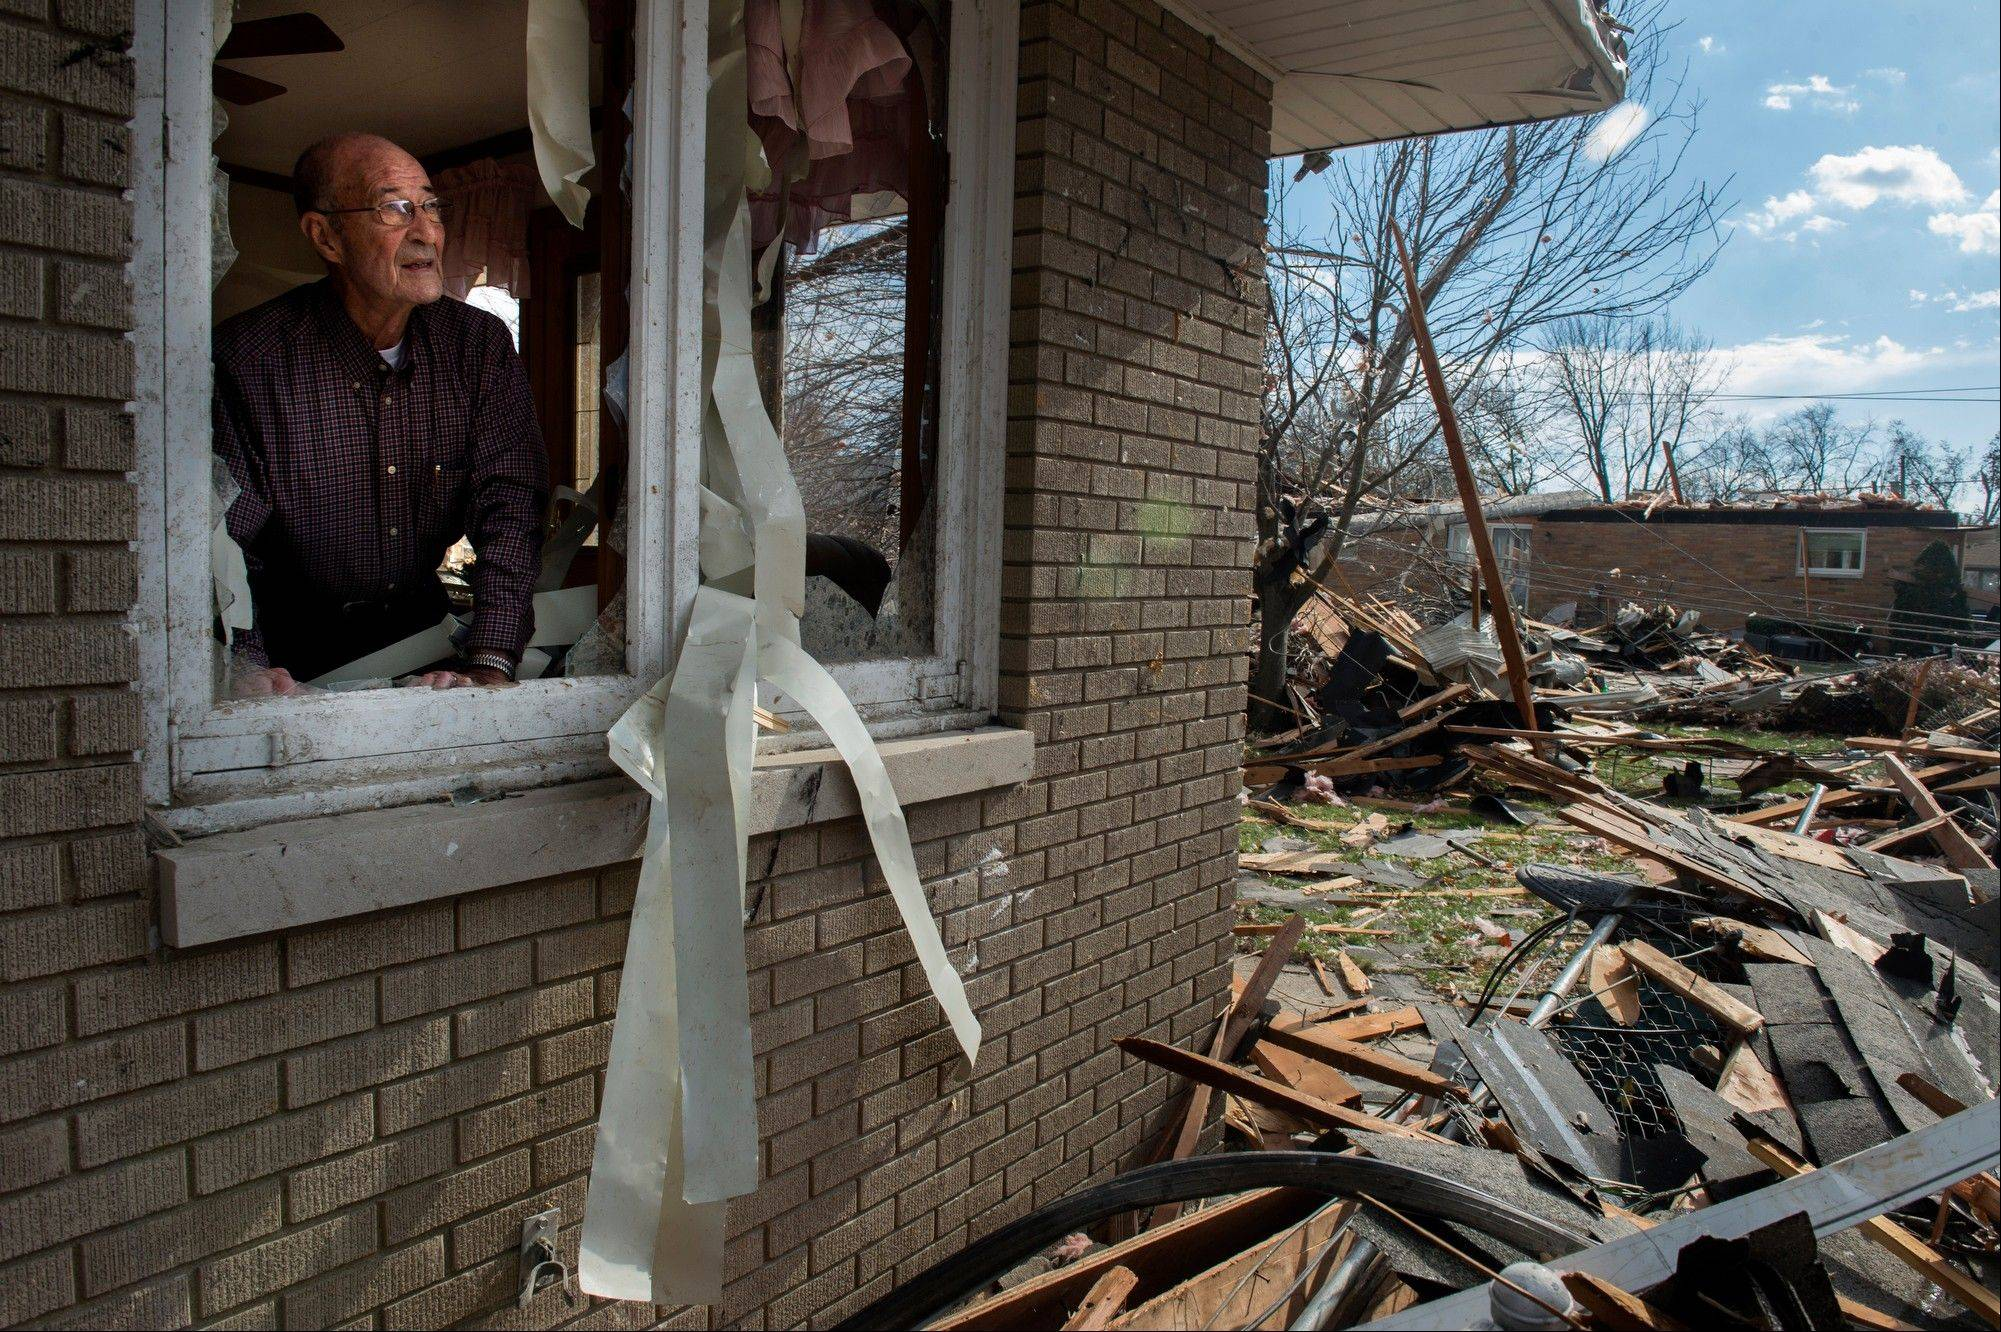 Chuck Phillips looks out at the destruction that tore off part of his roof and left houses around him destroyed after a tornado left a path of devastation through the north end of Pekin, Il., Sunday, Nov. 17, 2013. Intense thunderstorms and tornadoes swept across the Midwest on Sunday, causing extensive damage in several central Illinois communities while sending people to their basements for shelter.